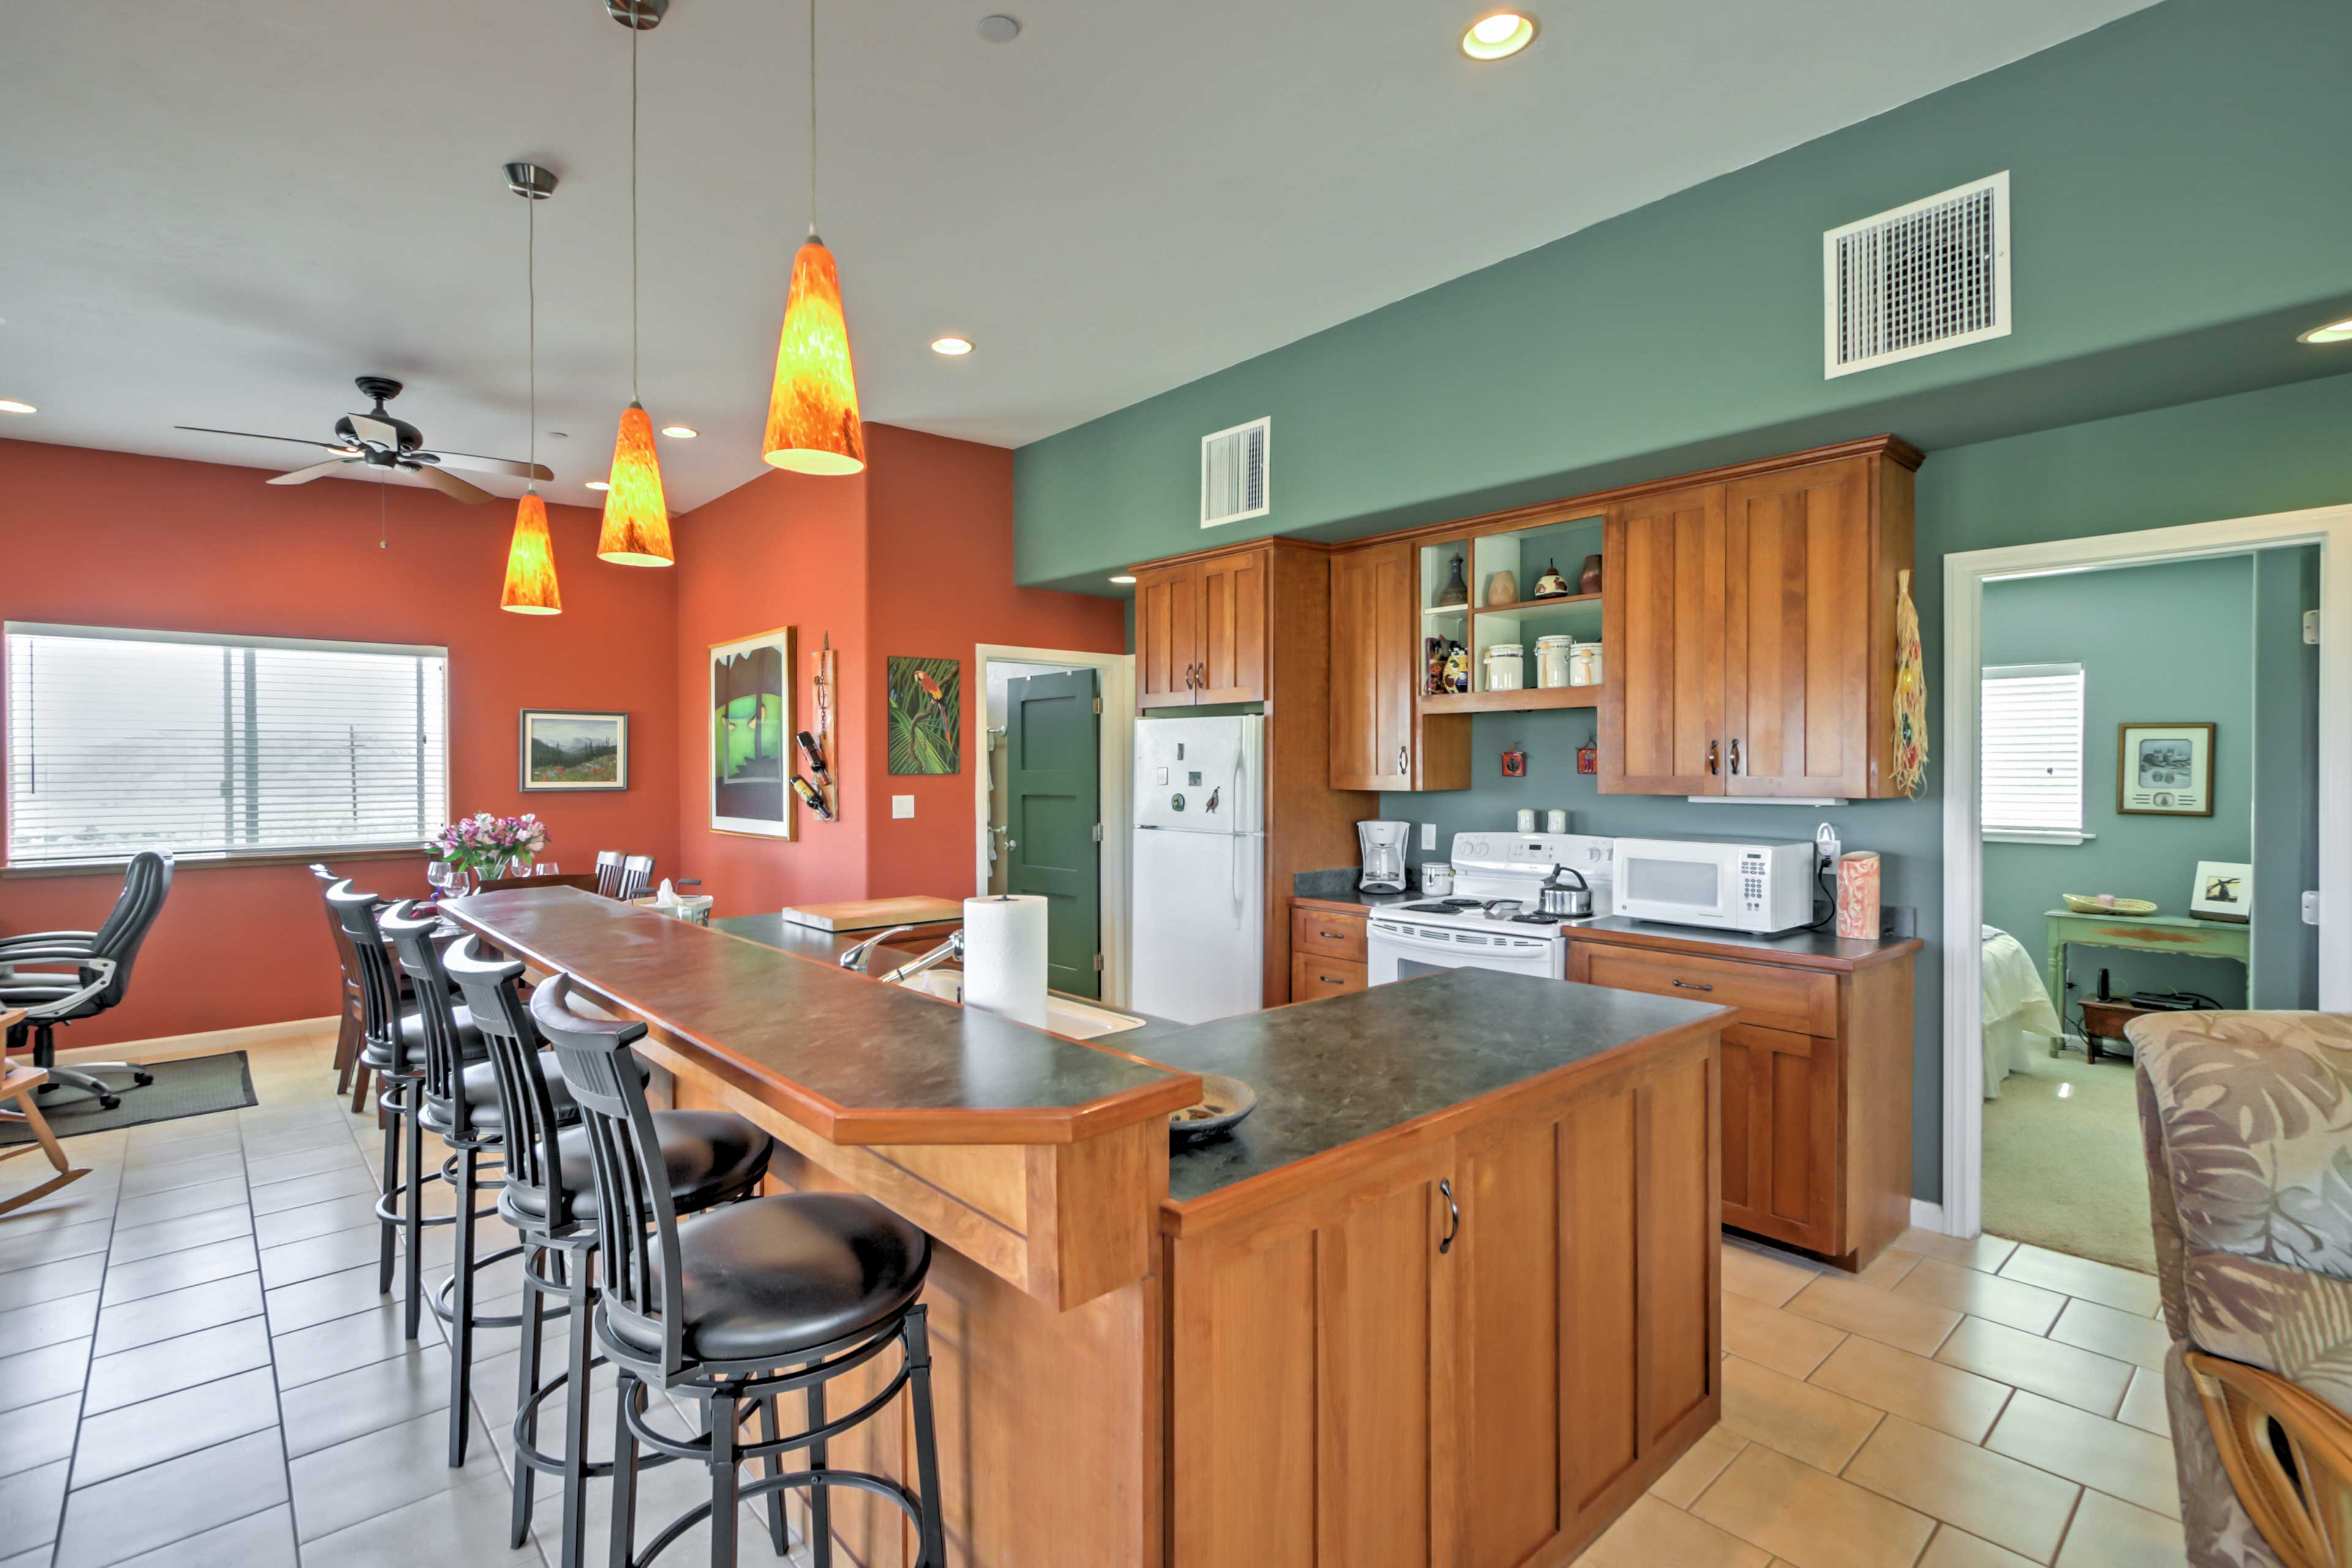 For additional seating, there is a breakfast bar with 4 comfortable bar stools.